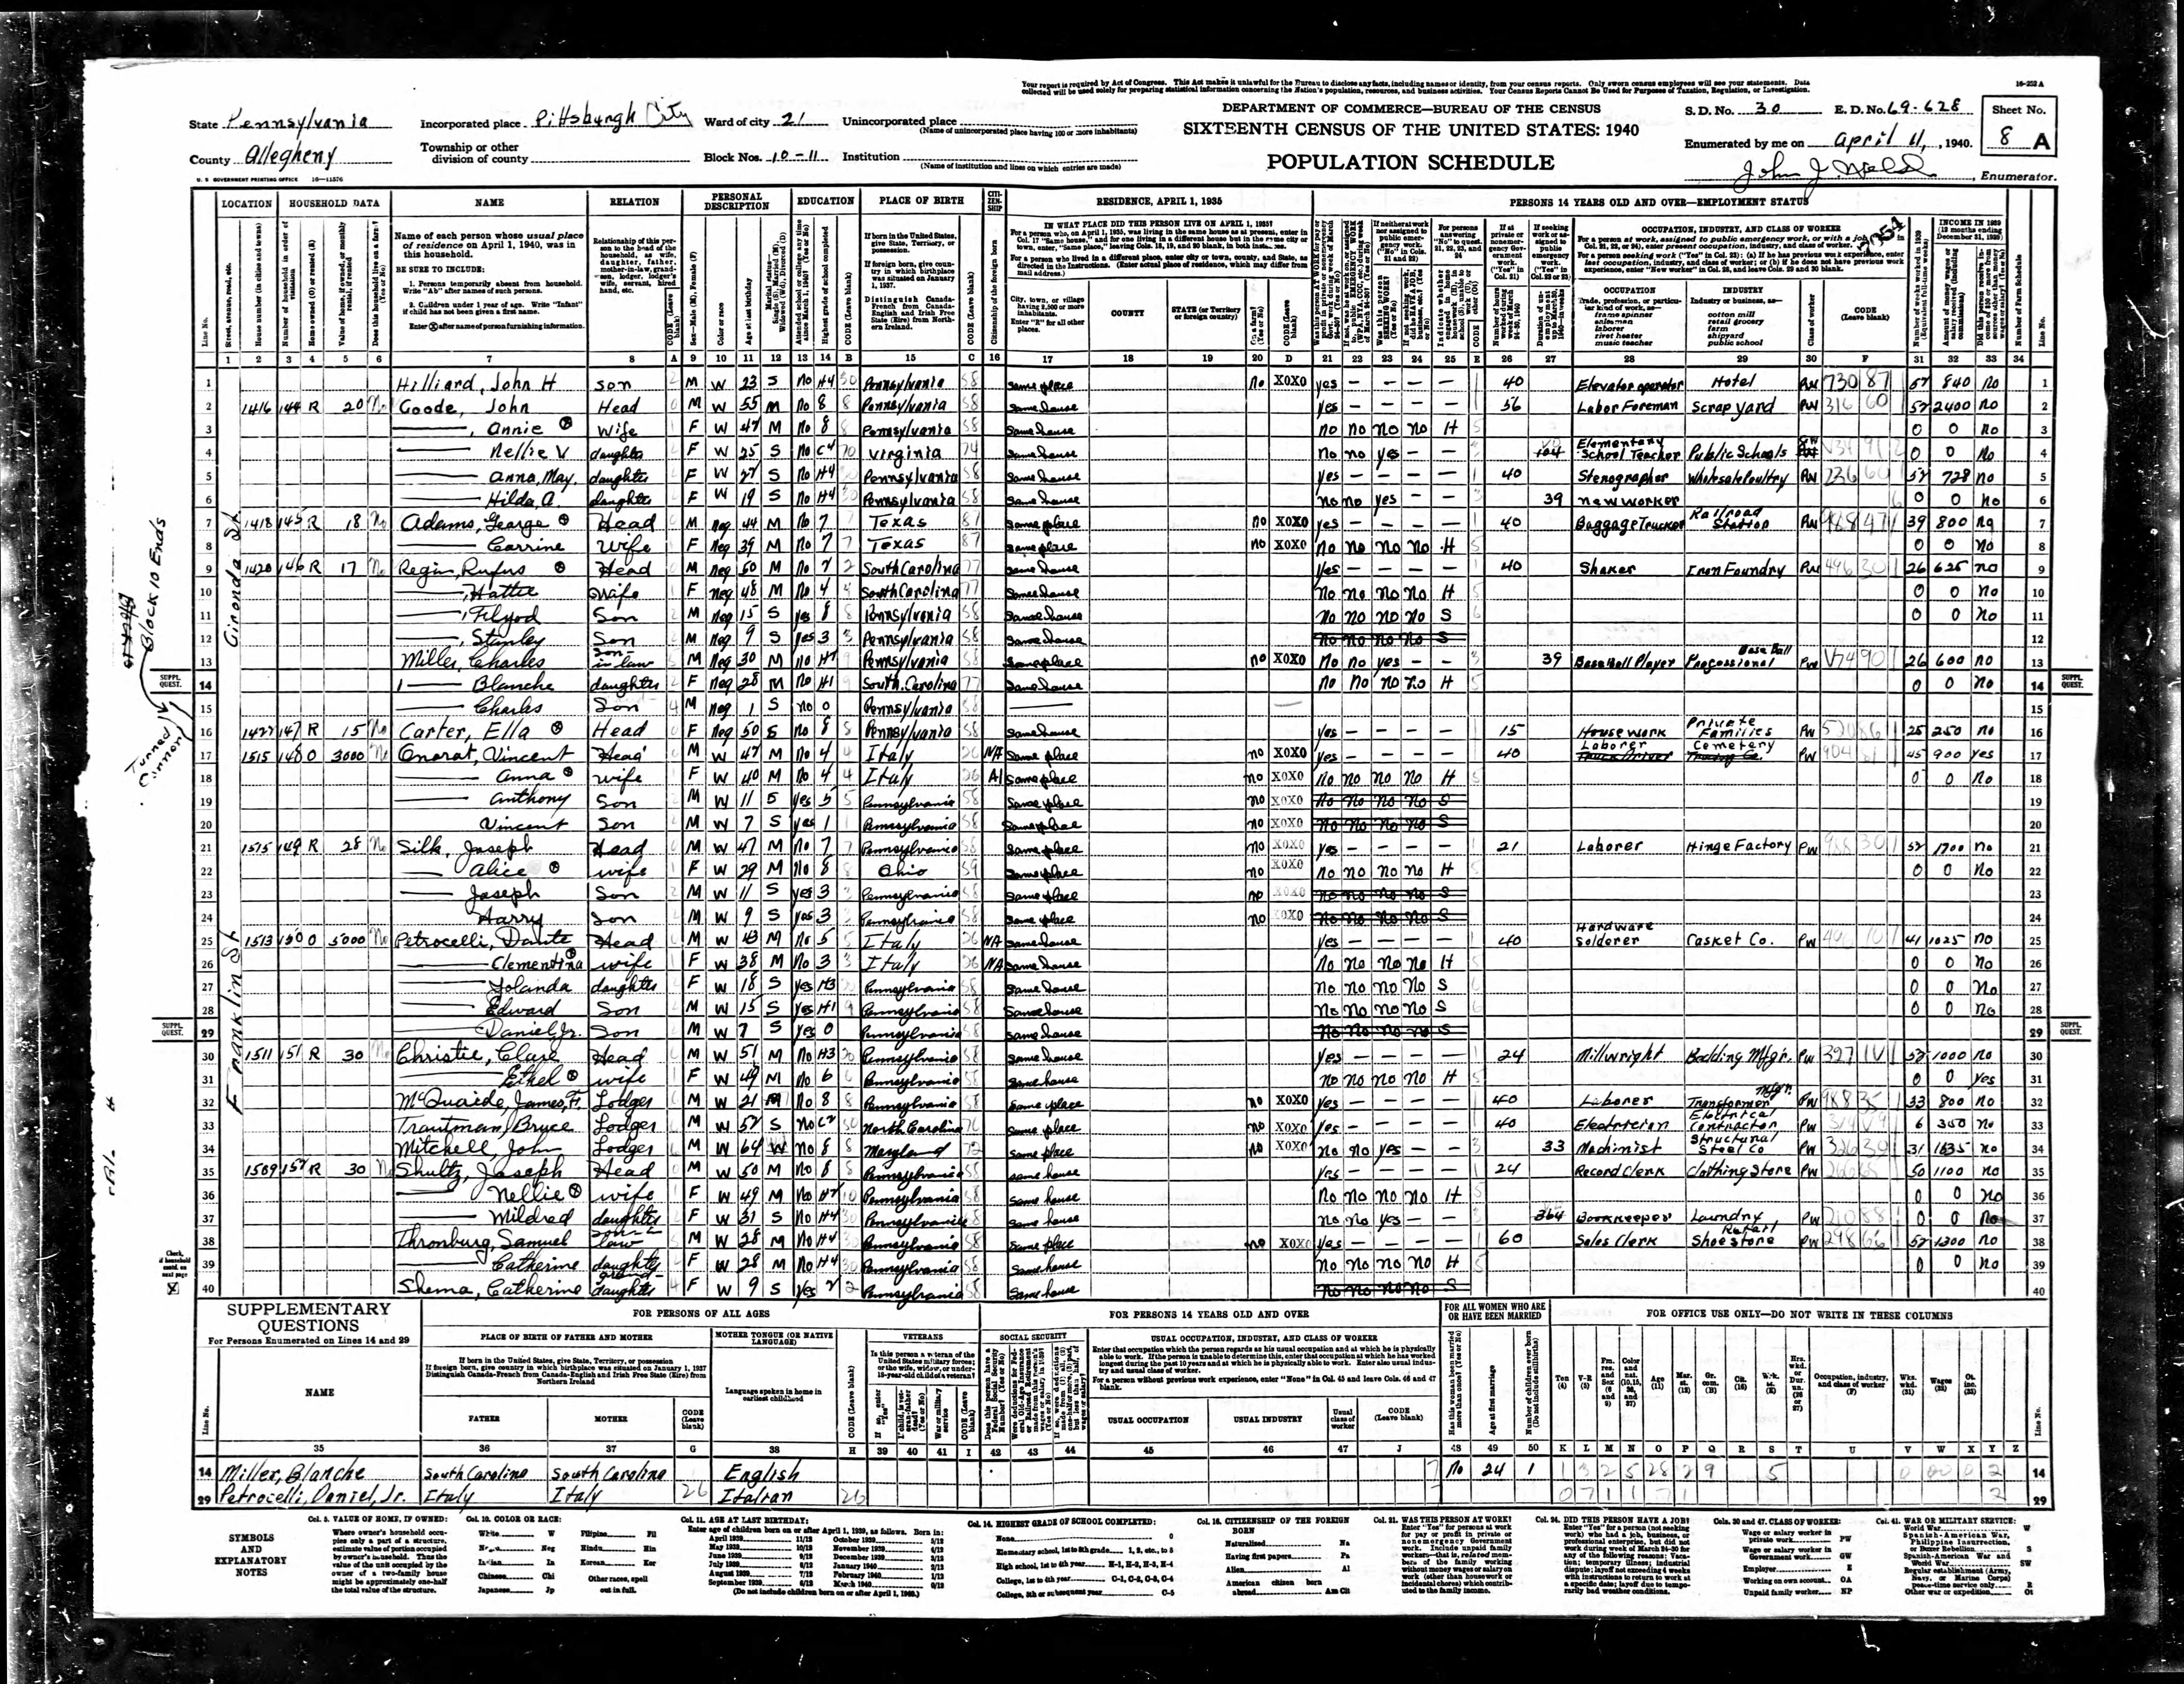 1940 Census Enumeration Form: Charles Miller, 30, African American, Professional Baseball Player